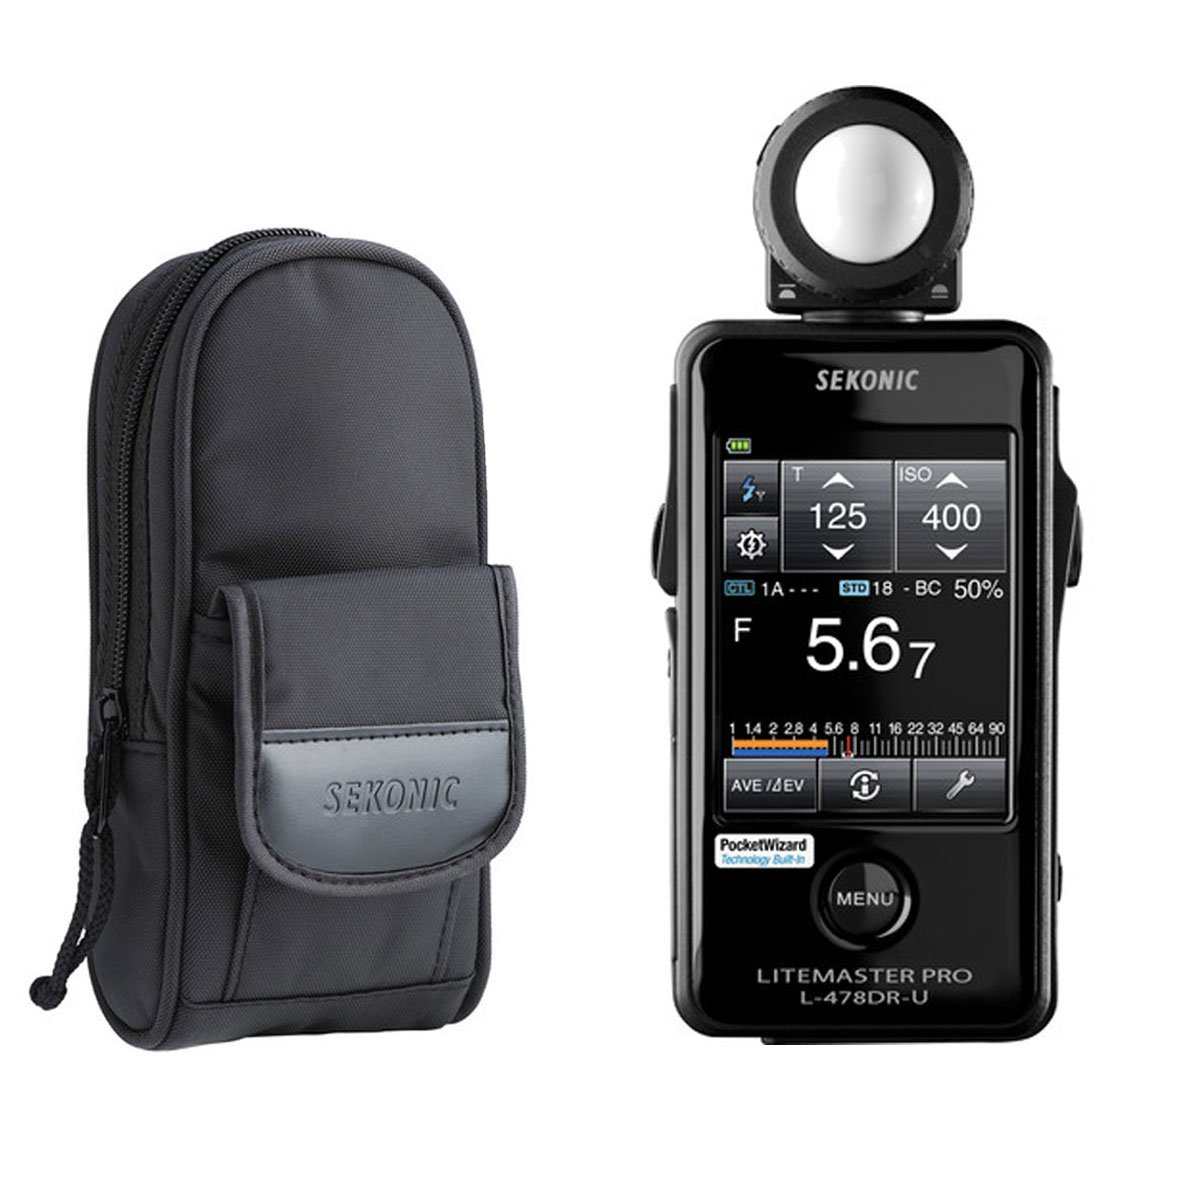 Sekonic LiteMaster Pro L-478DR-U Light Meter for PocketWizard System With Exclusive USA Radio Frequency And Exclusive 3-Year Warranty + Sekonic Deluxe Case for L-478-series meters by Sekonic